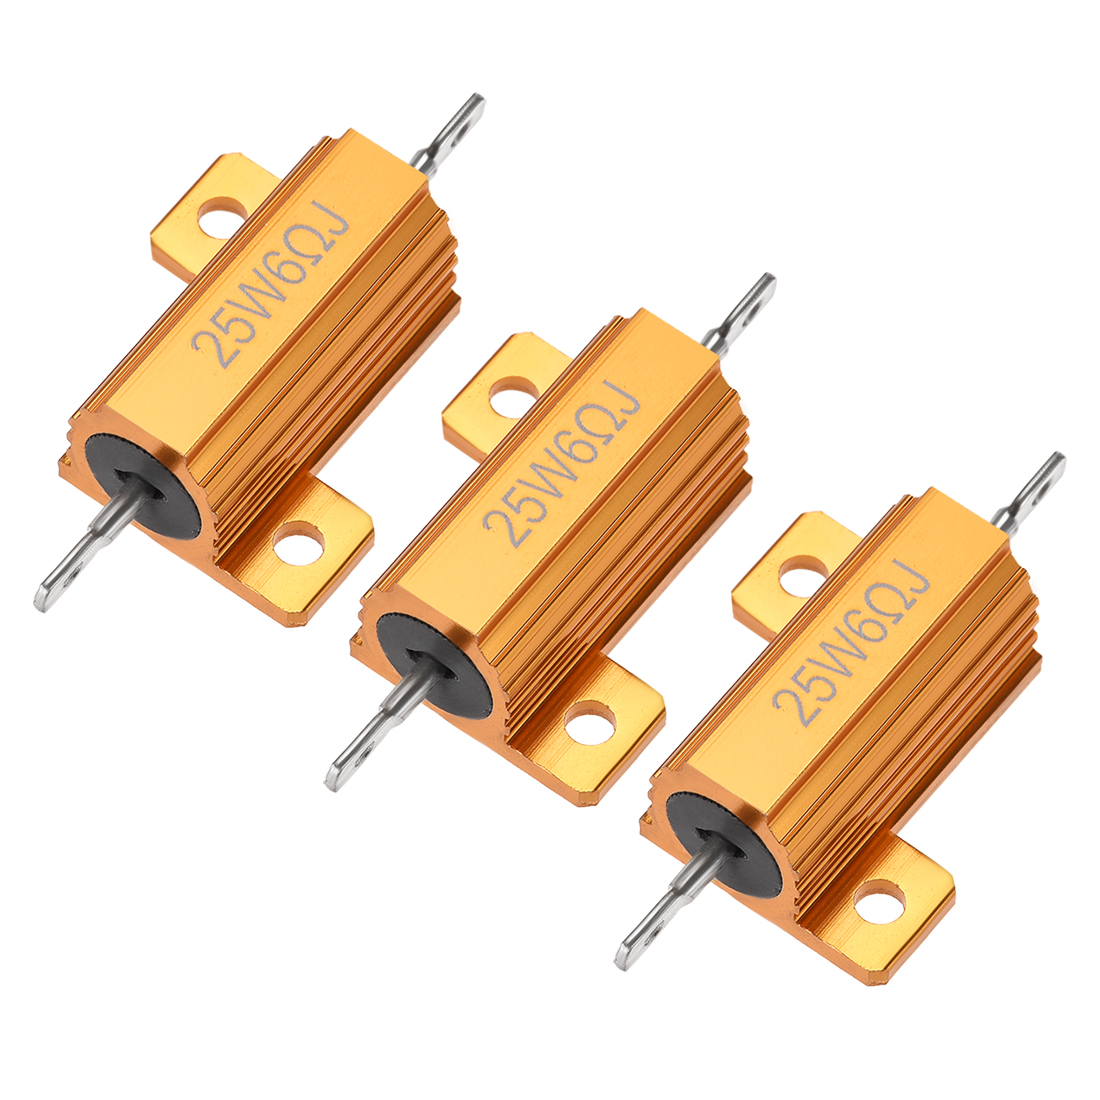 25W 6 Ohm 5% Aluminum Housing Resistor Wirewound Resistor Gold Tone 3 Pcs